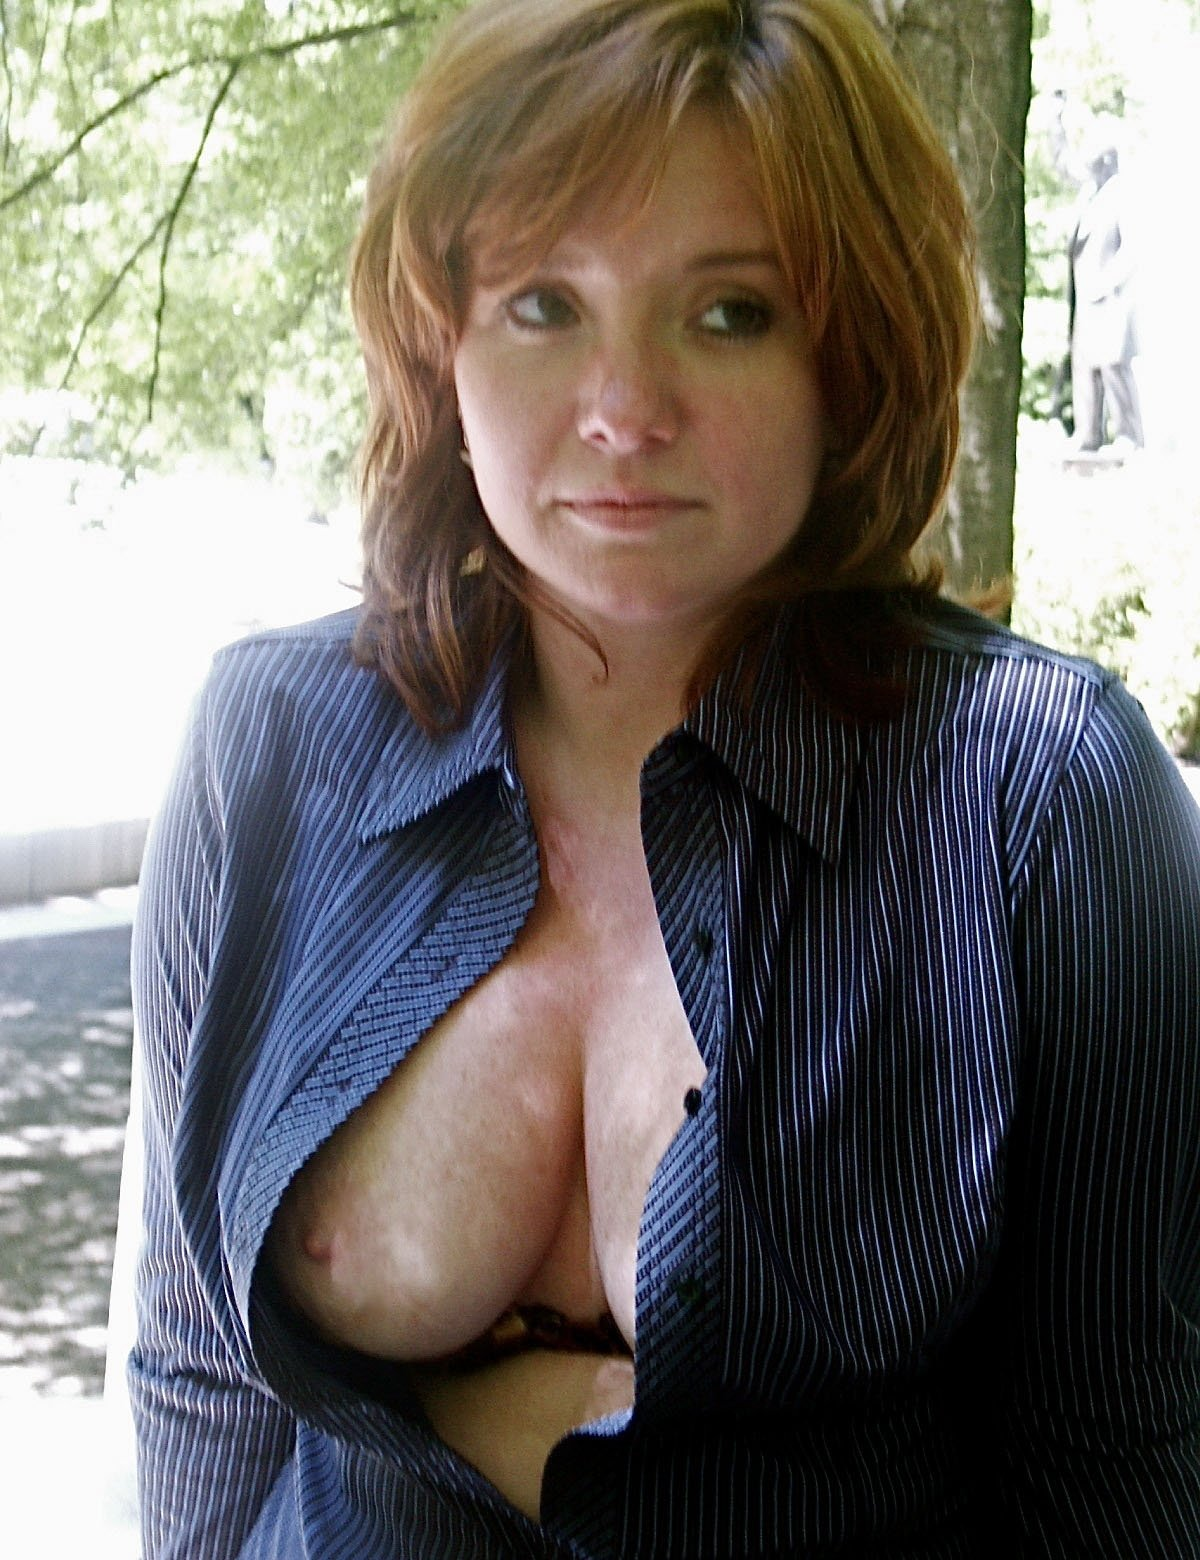 Huge mature tits lucky girl